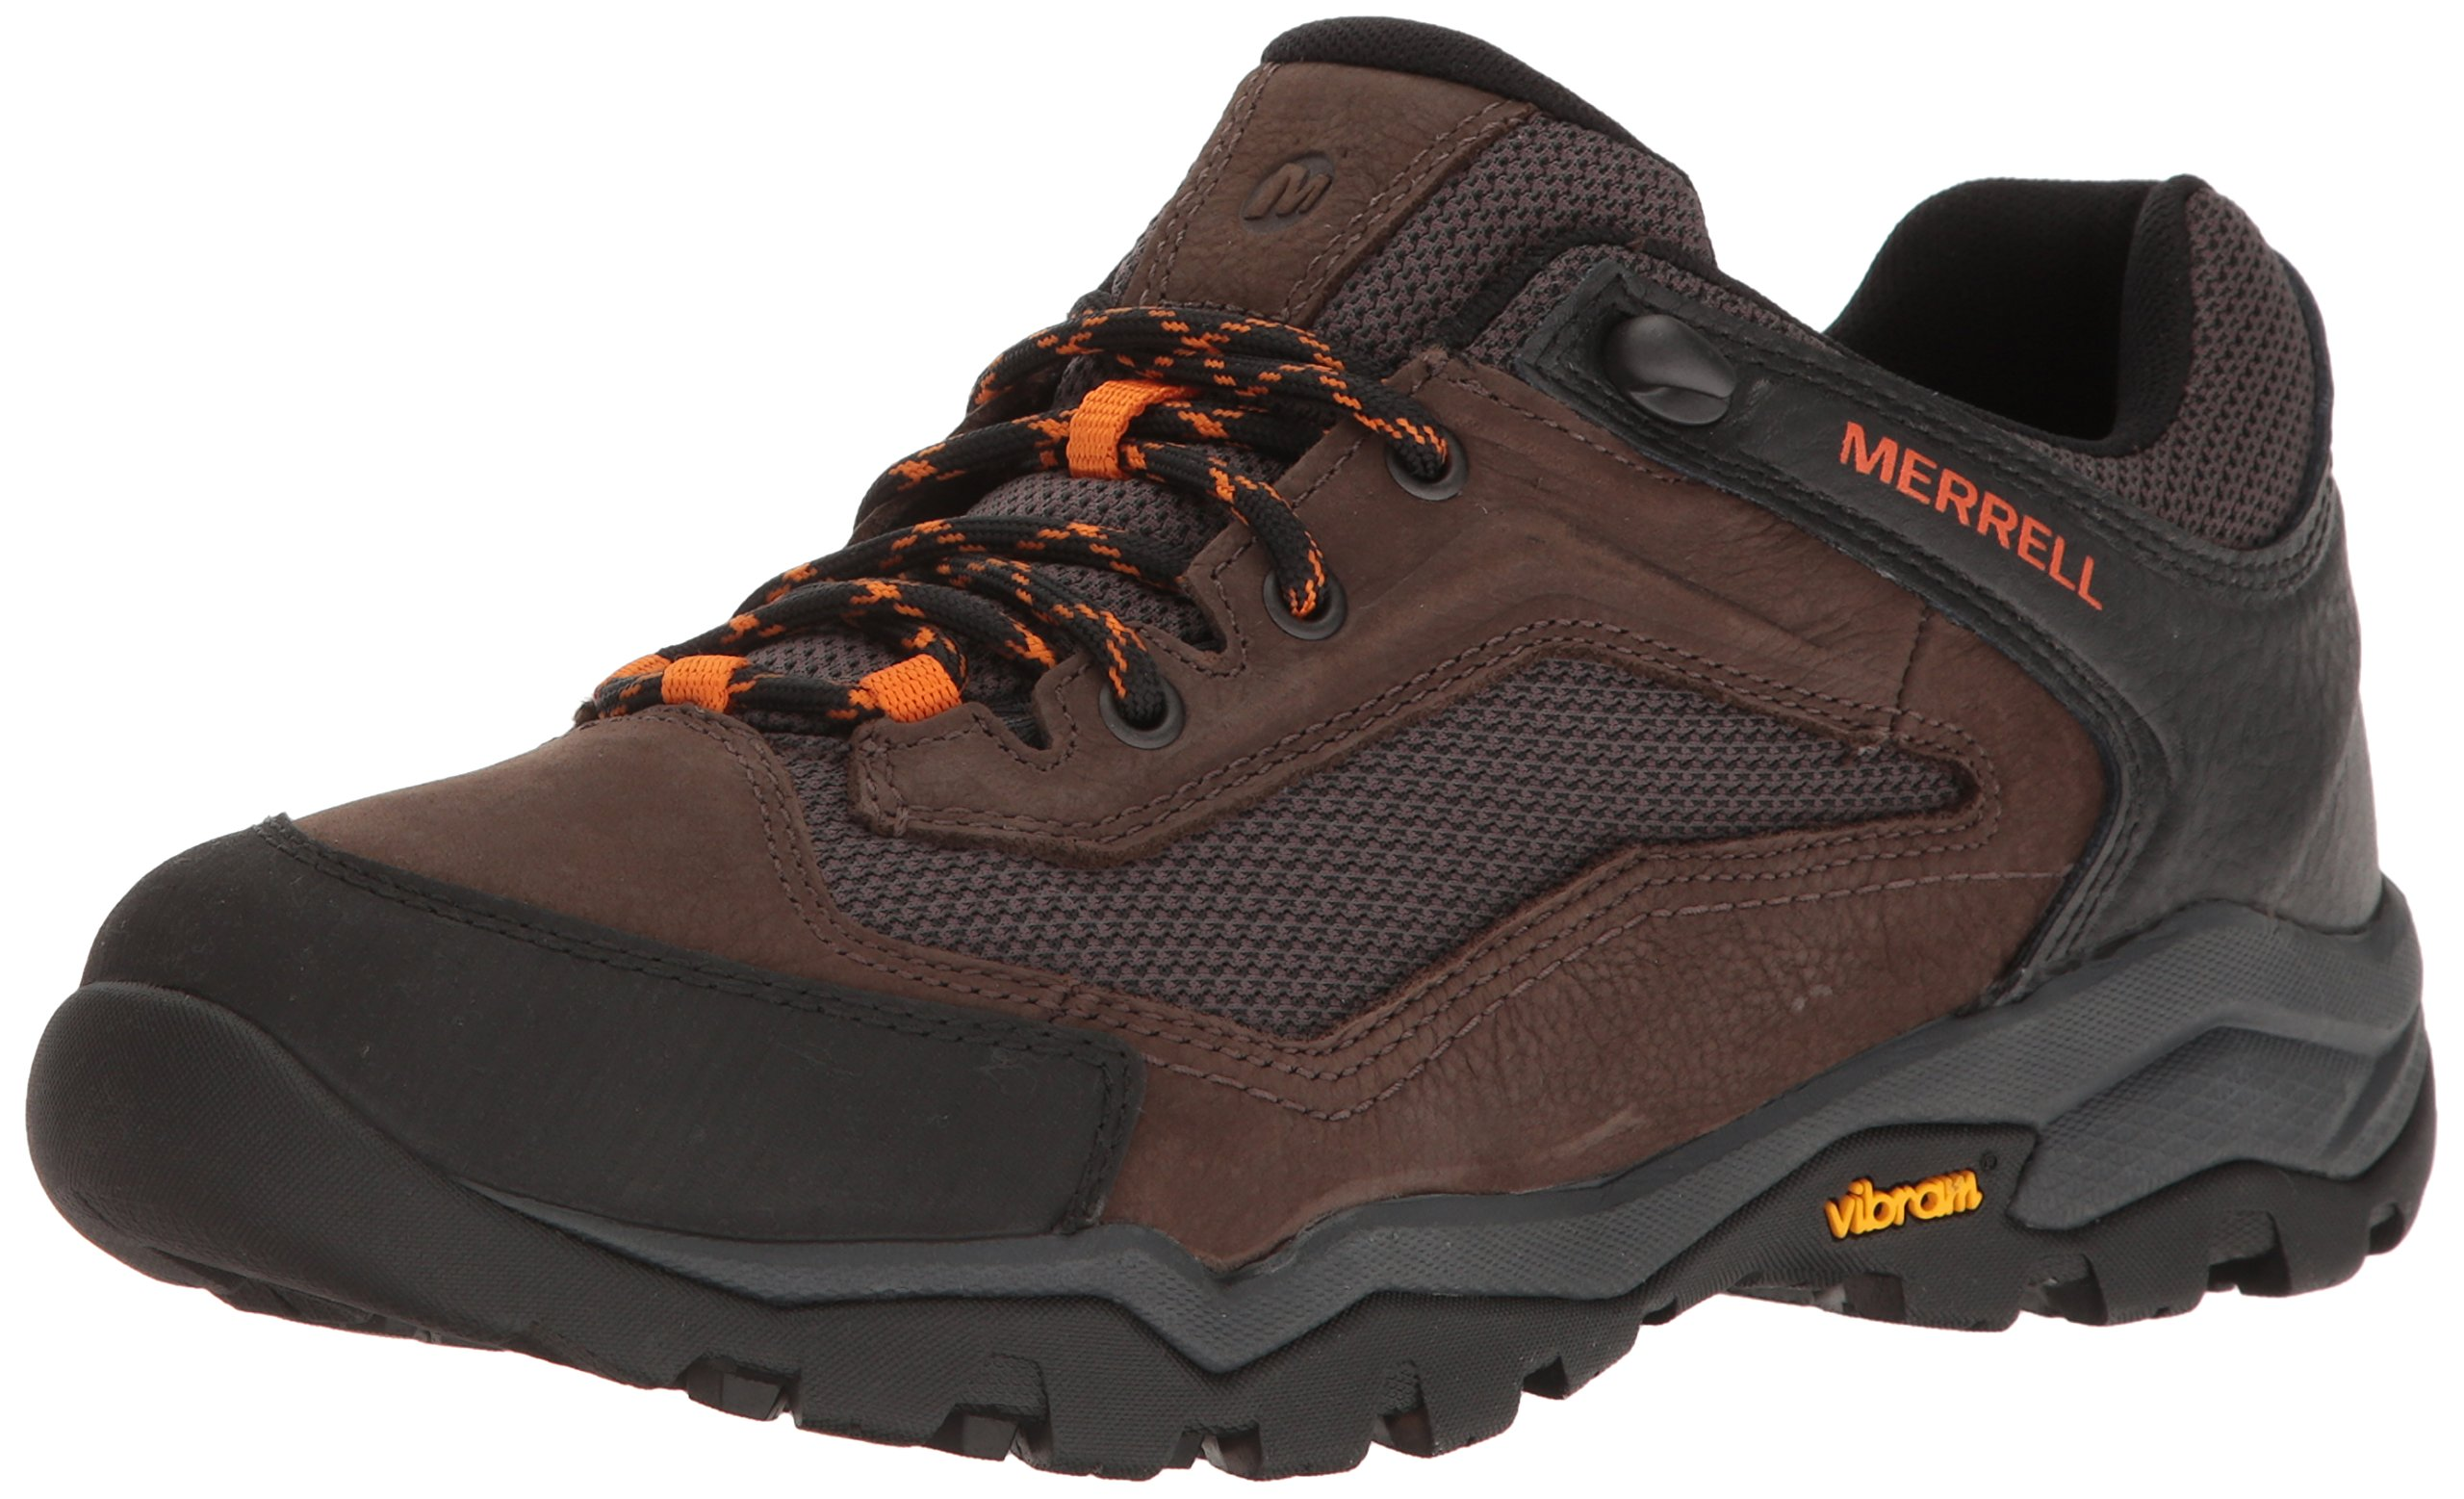 Merrell Men's Everbound Vent Backpacking Boot, Slate Black, 11.5 M US by Merrell